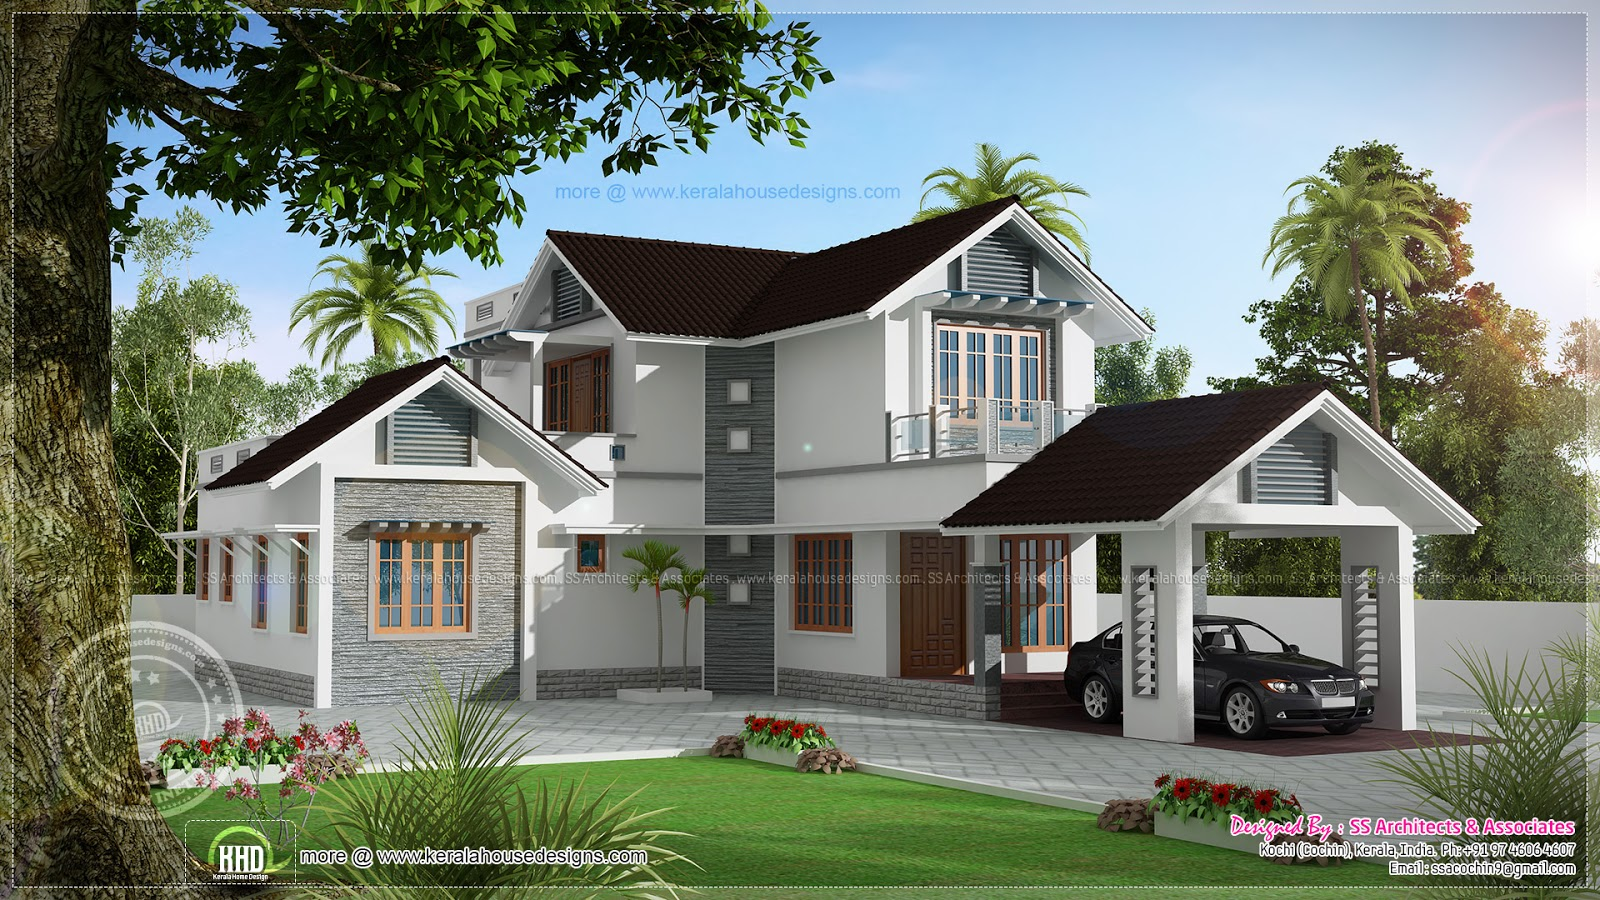 1922 sq ft double storied villa kerala home design and floor plans - Design of home ...